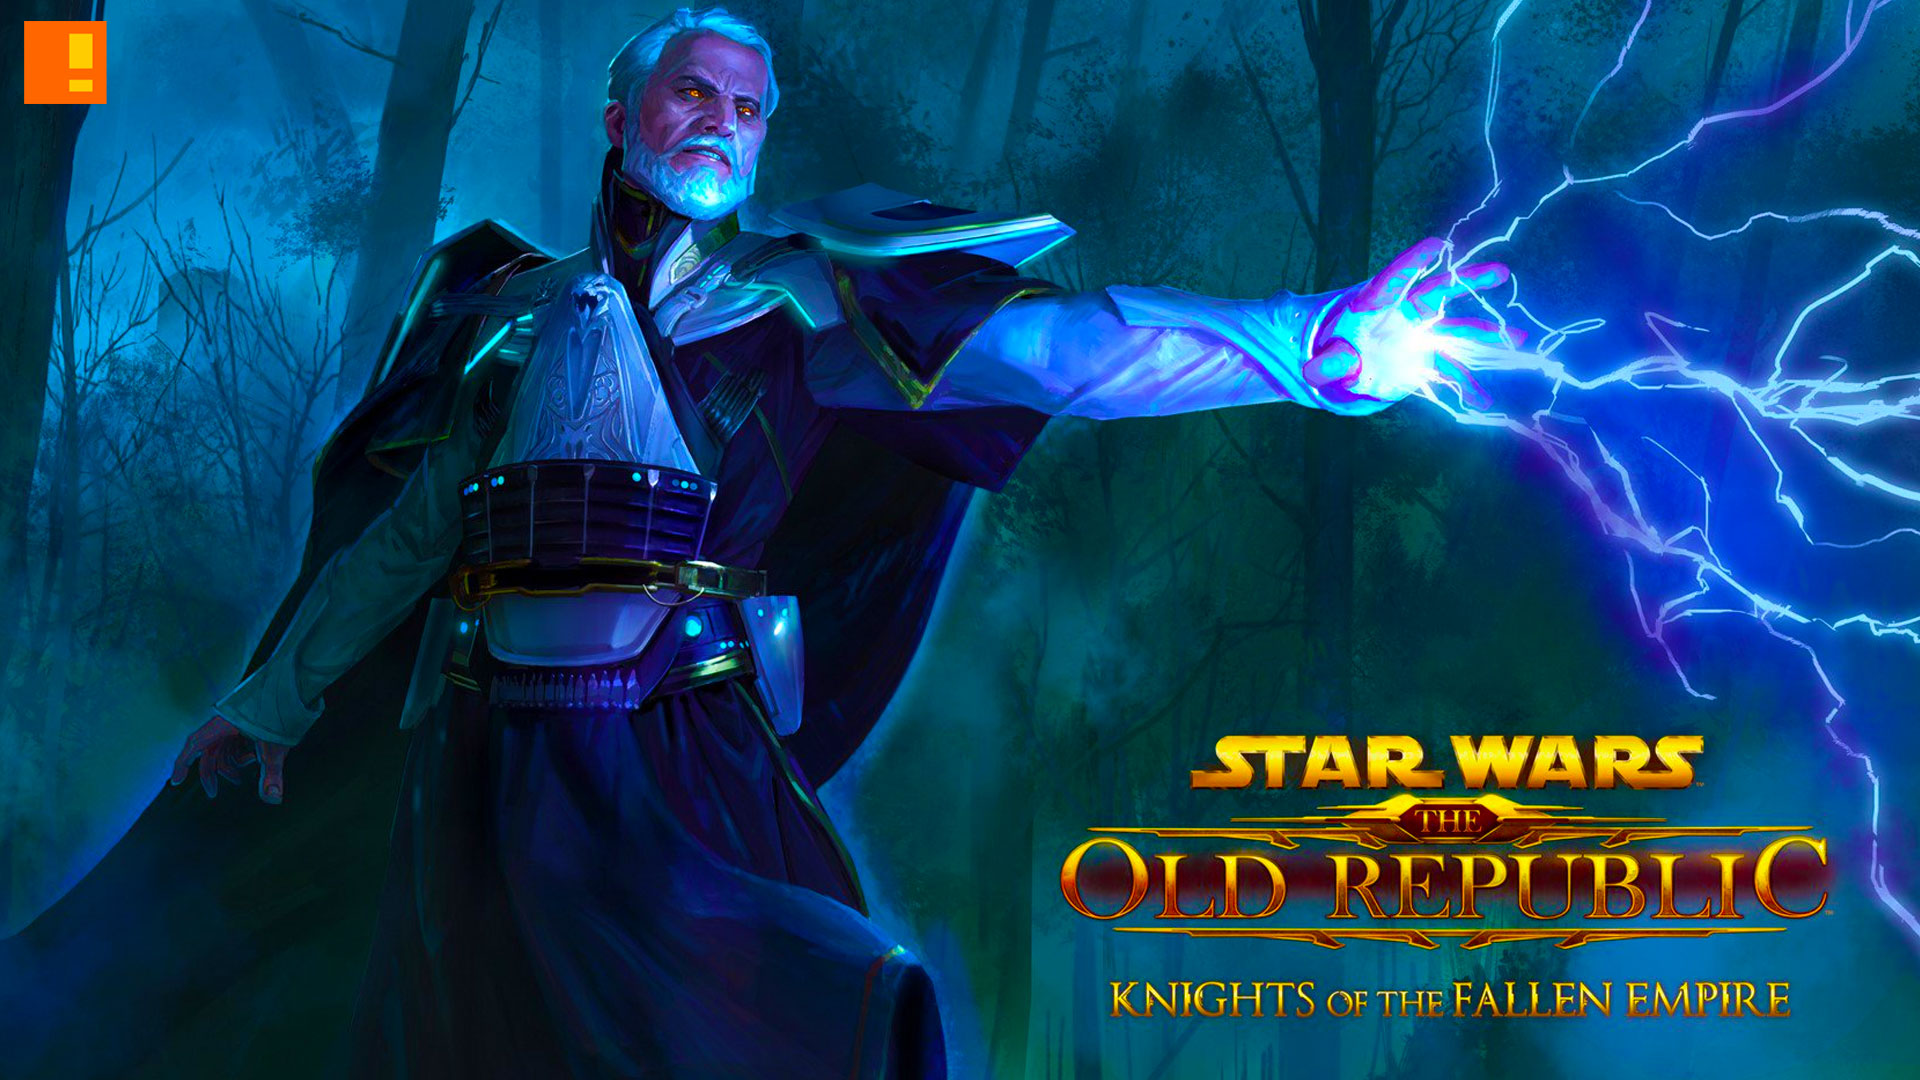 "Star Wars: The Old Republic - Knights of the Fallen Empire ""Visions in the Dark"" Teaser . the action pixel. bioware. lucasfilm. the action pixel. @theactionpixel"